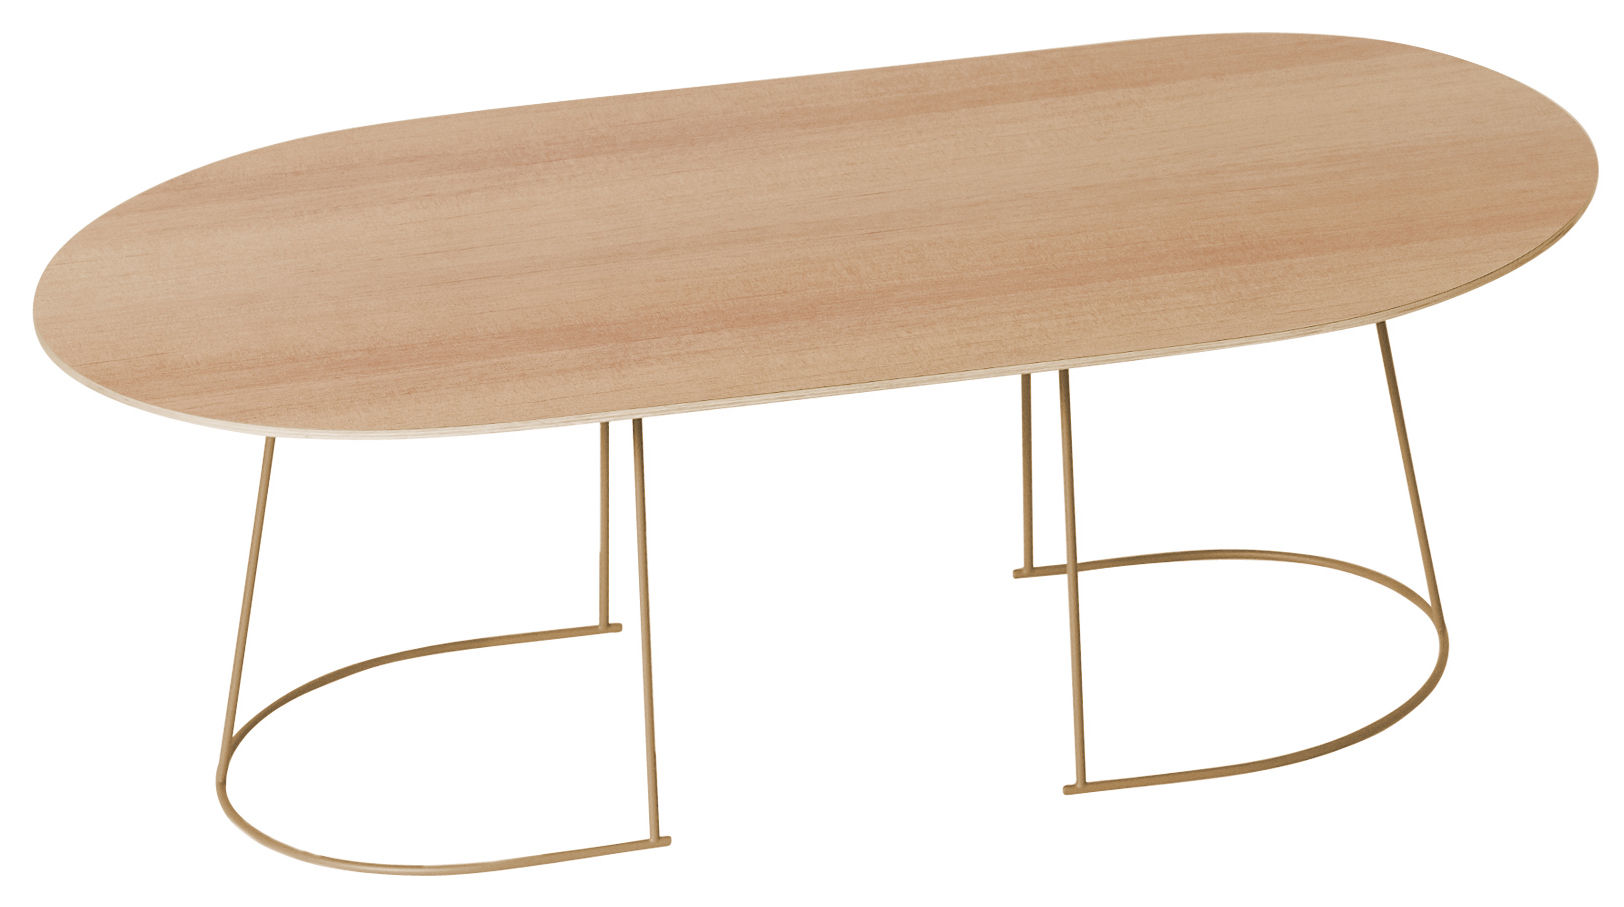 table basse airy large 120 x 65 cm pin naturel pied or muuto. Black Bedroom Furniture Sets. Home Design Ideas